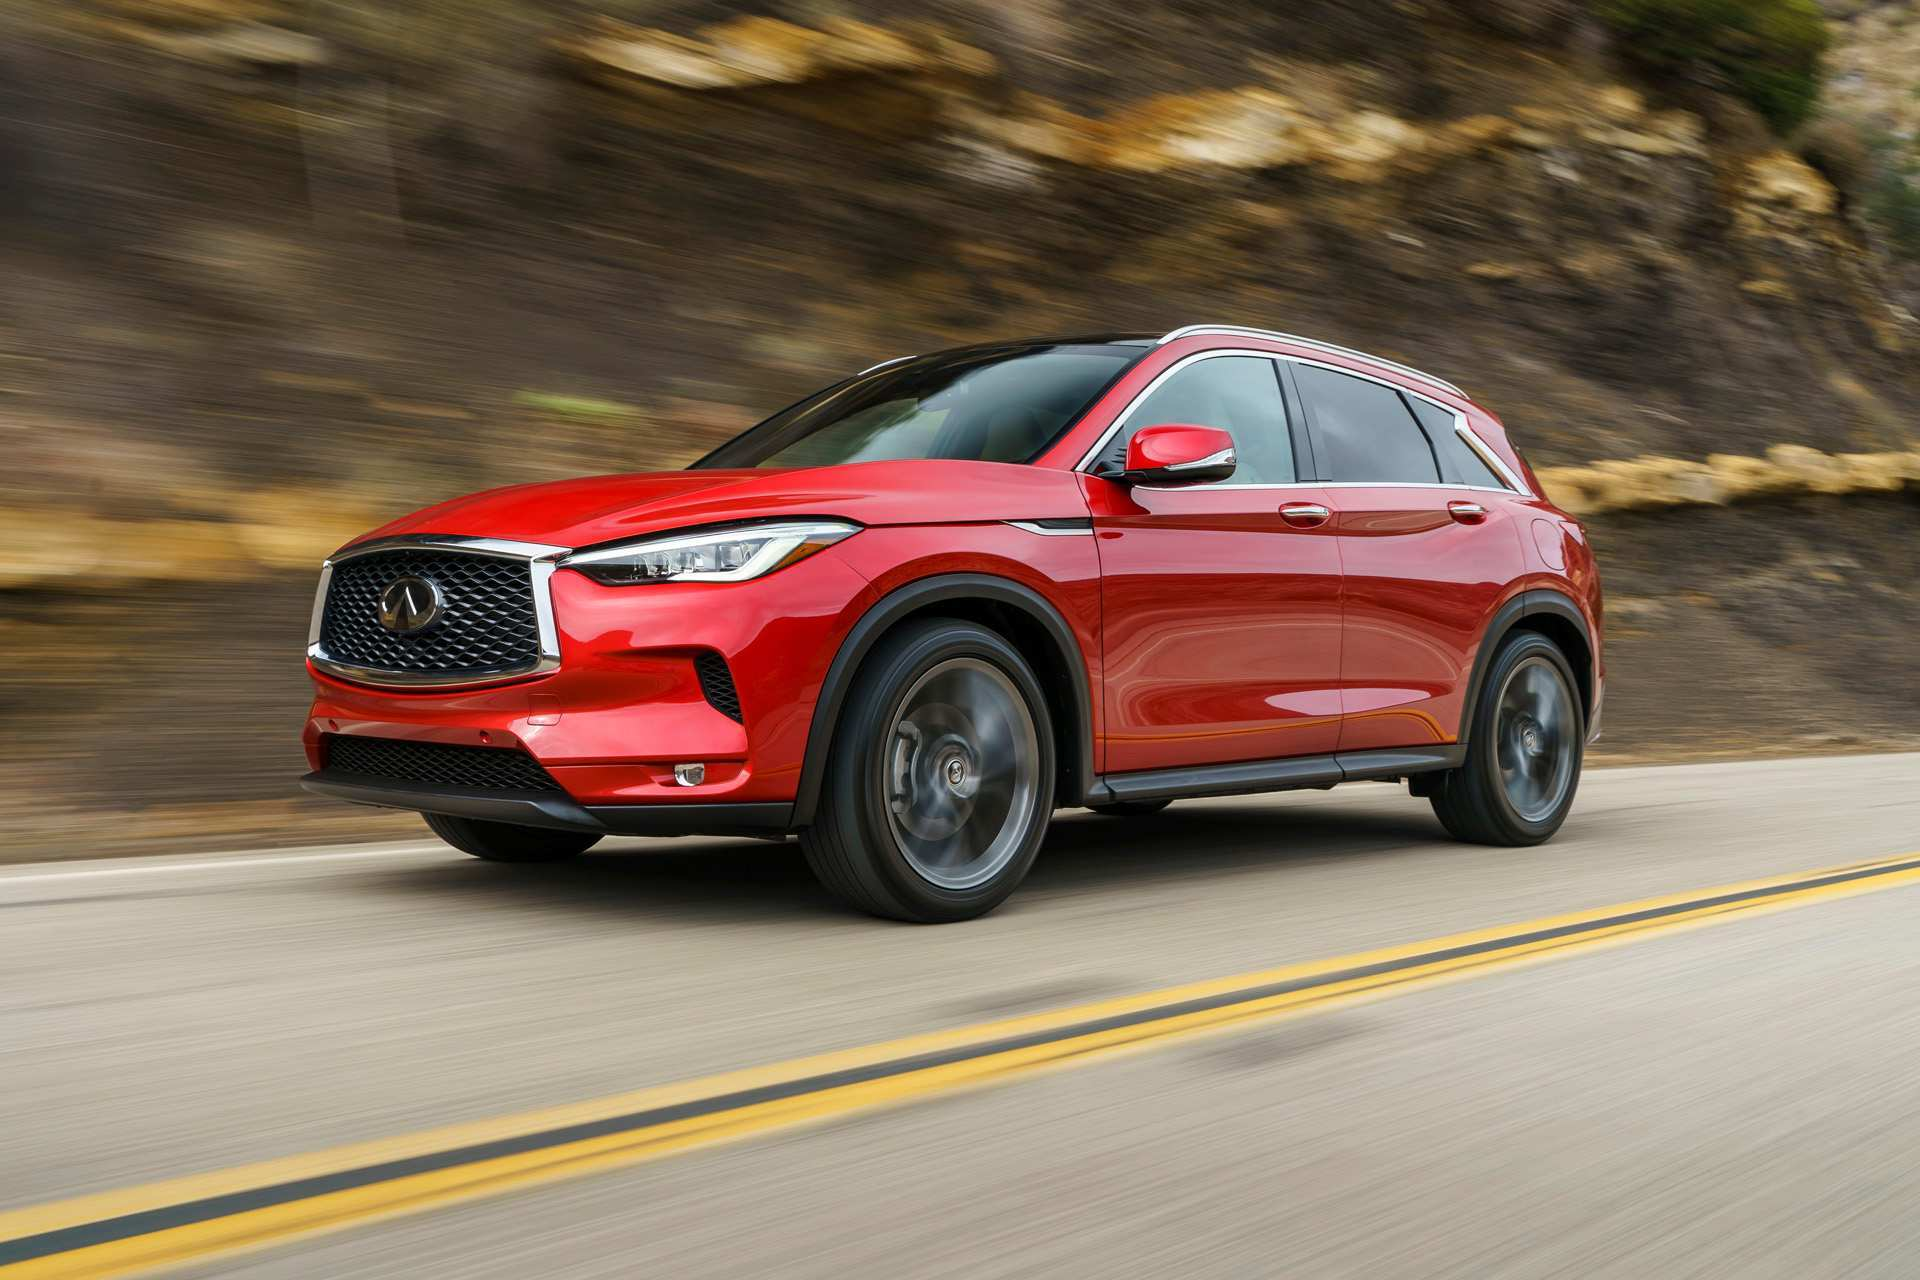 36 New The Infiniti News 2019 Review Photos with The Infiniti News 2019 Review